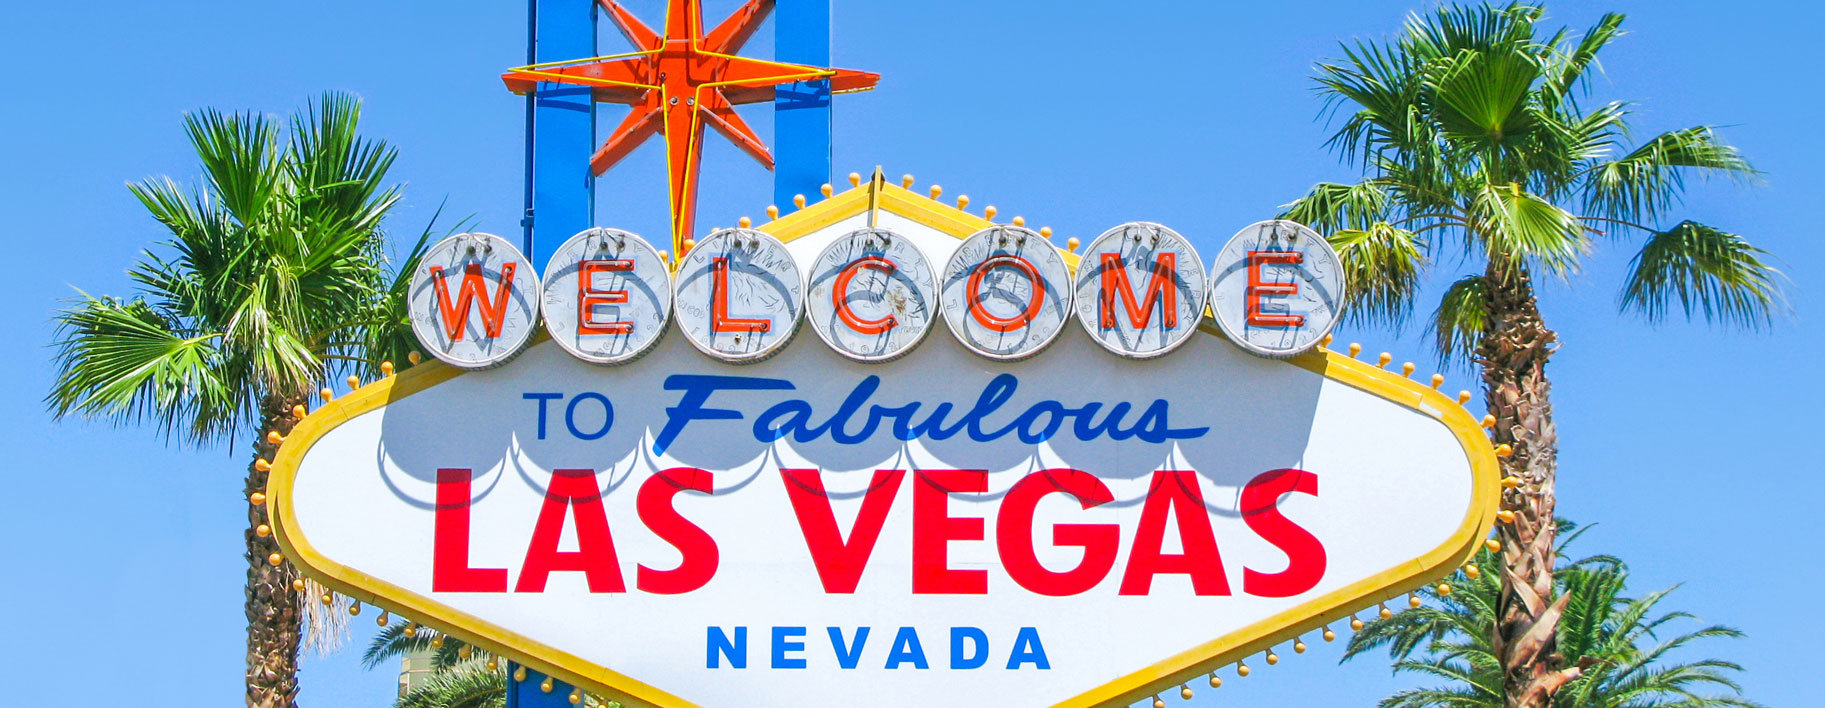 famous-las-vegas-sign-bright-sunny-day-w